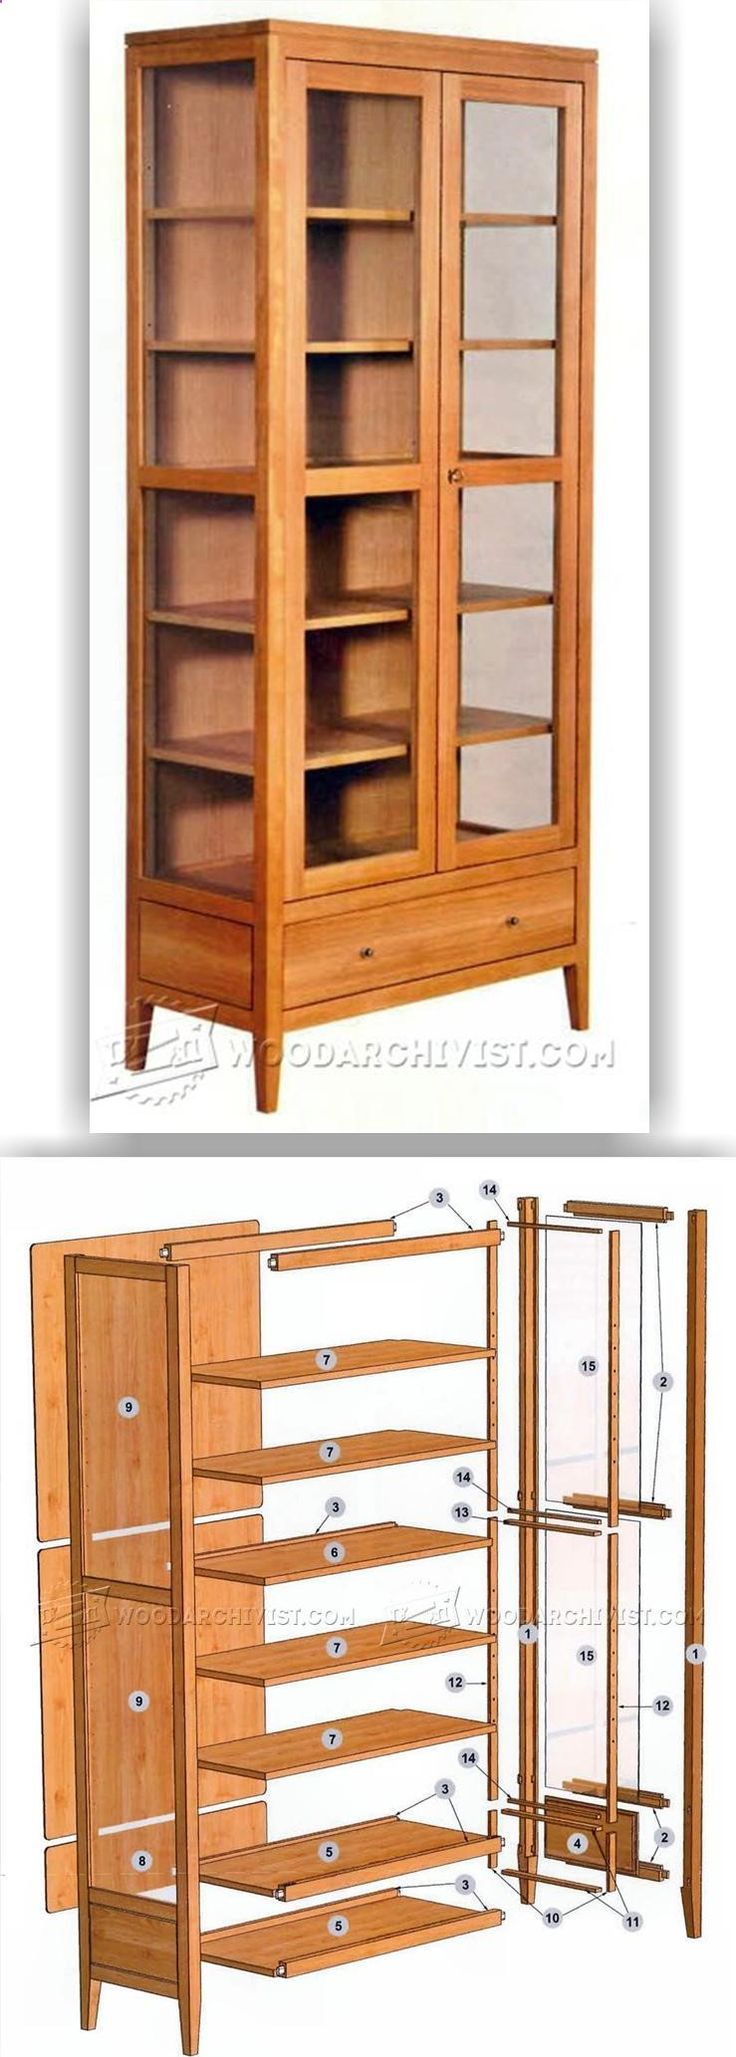 Showcase cabinet plans furniture plans and projects - Woodworking plans bedroom furniture ...